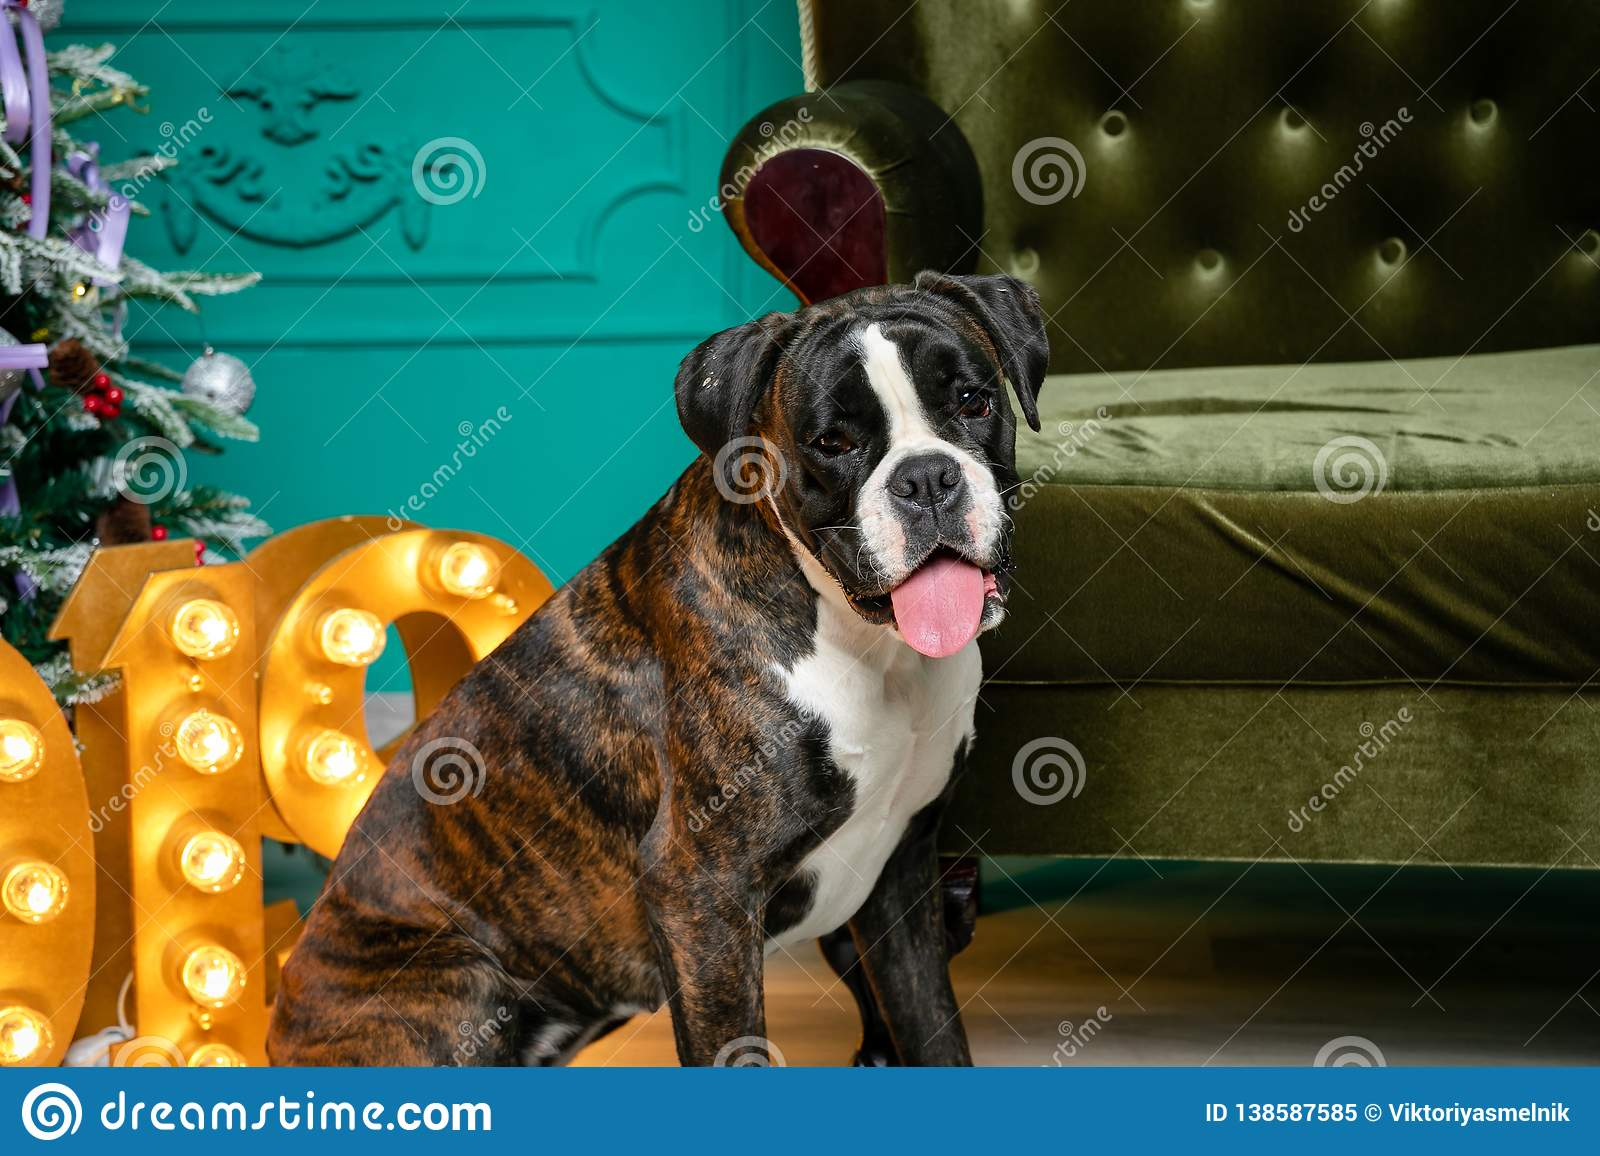 Dog, German boxer brown-and-white, with protruding tongue girl. sitting in front of the Christmas tree, burning figures 2019, gree